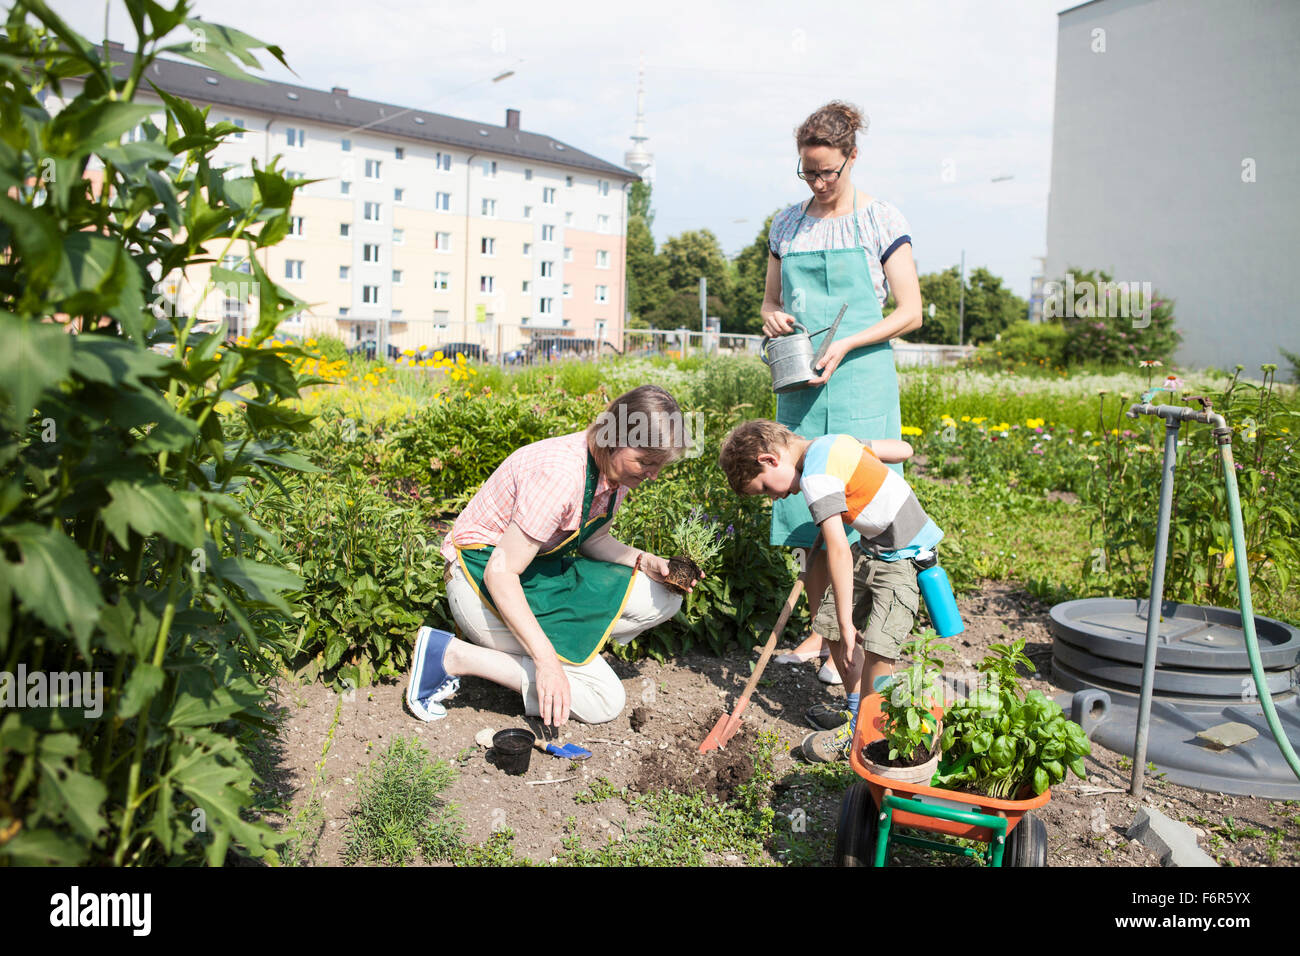 Family working together in vegetable garden - Stock Image